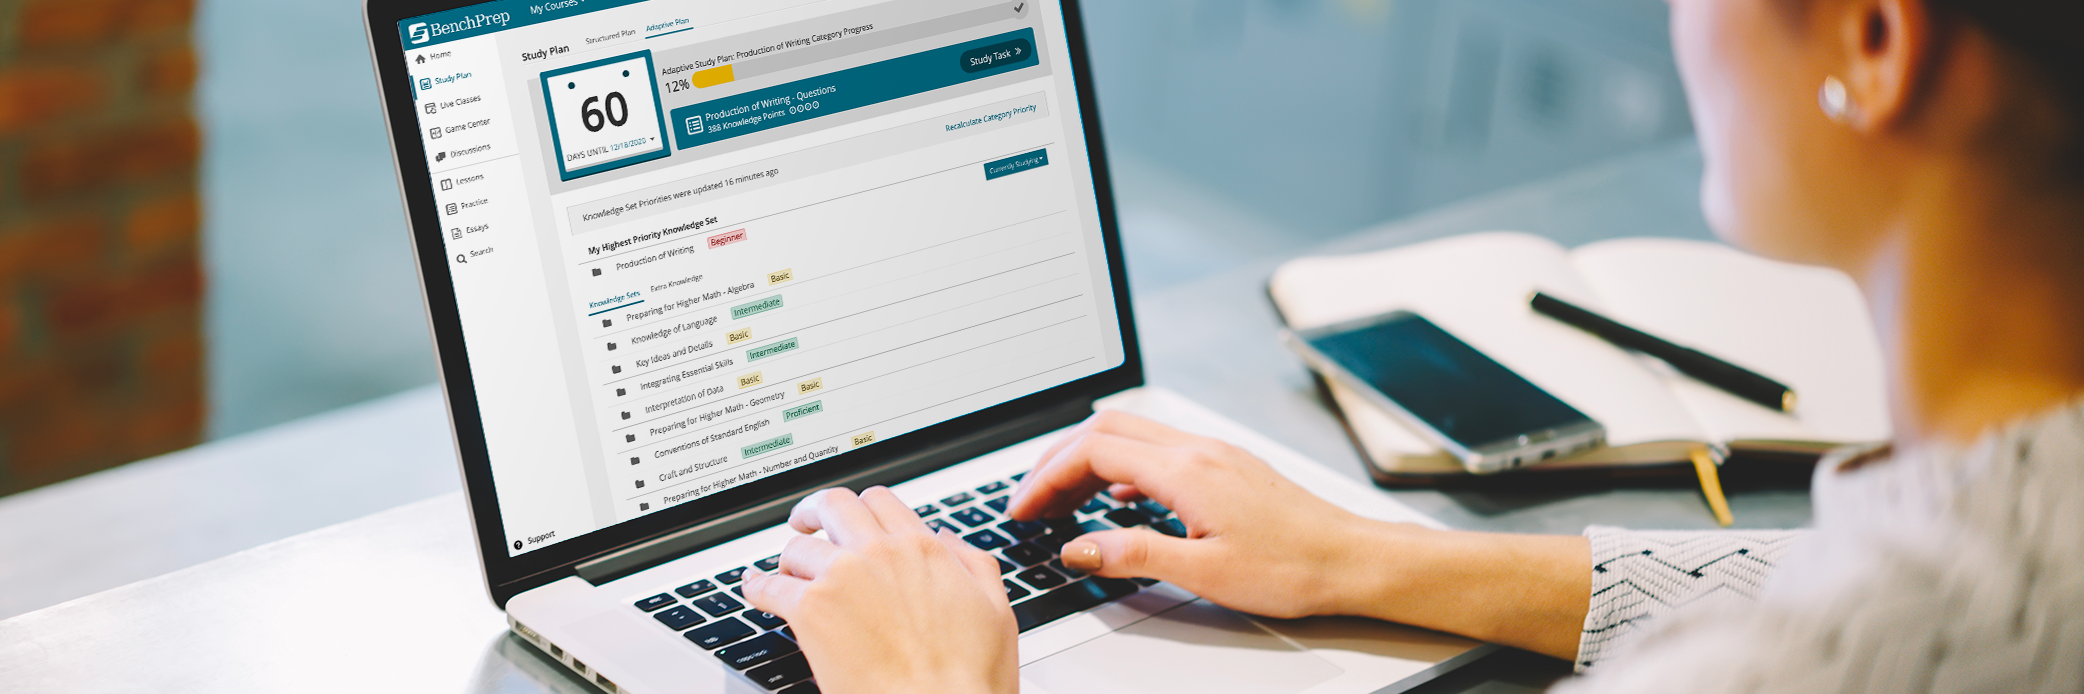 Adaptive eLearning: How to Leverage Content For a Personalized Study Plan